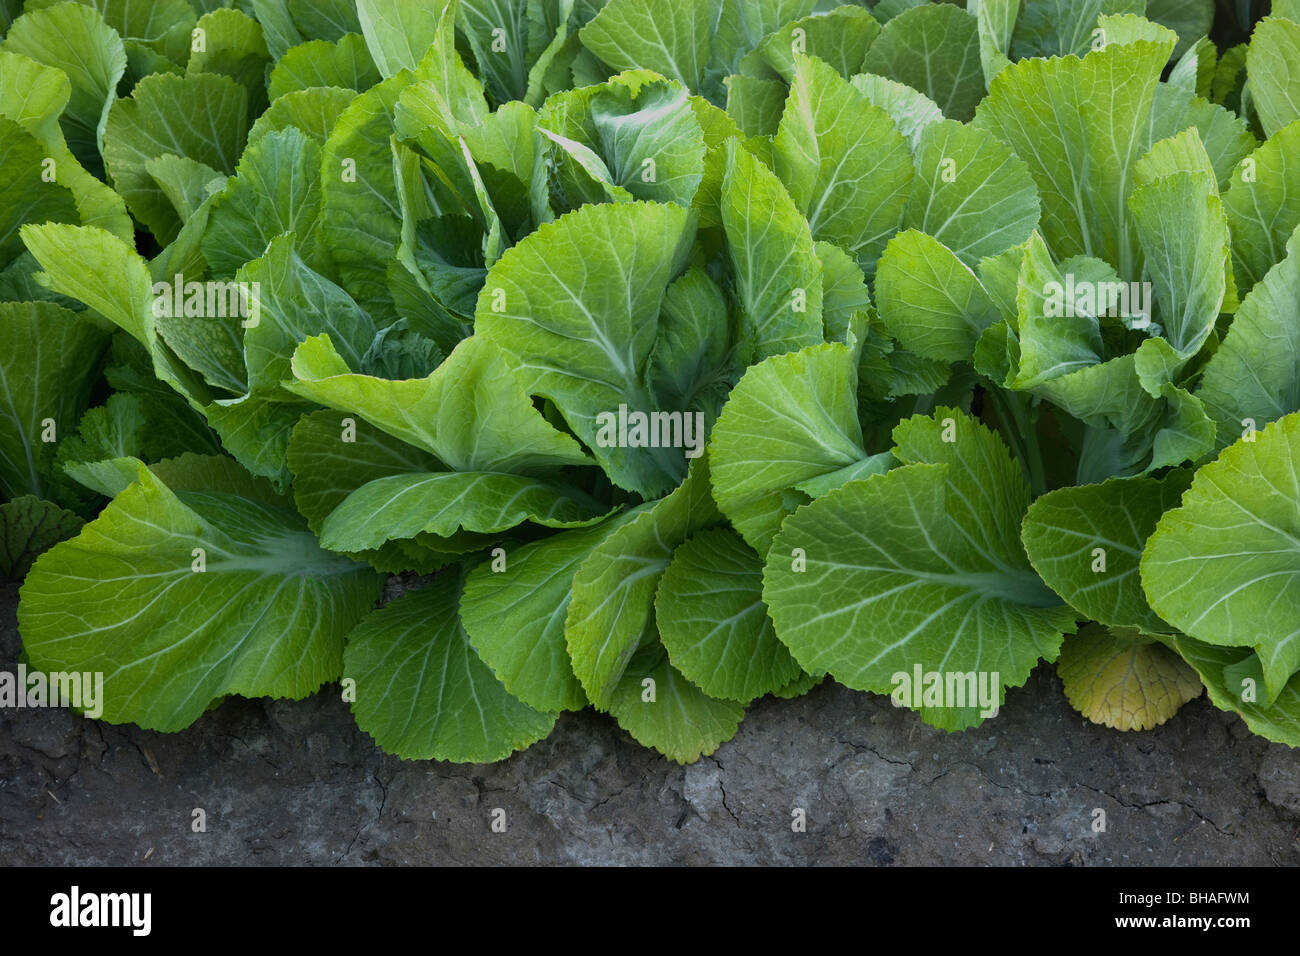 Les feuilles de moutarde 'Gai Choy' légumes. Photo Stock